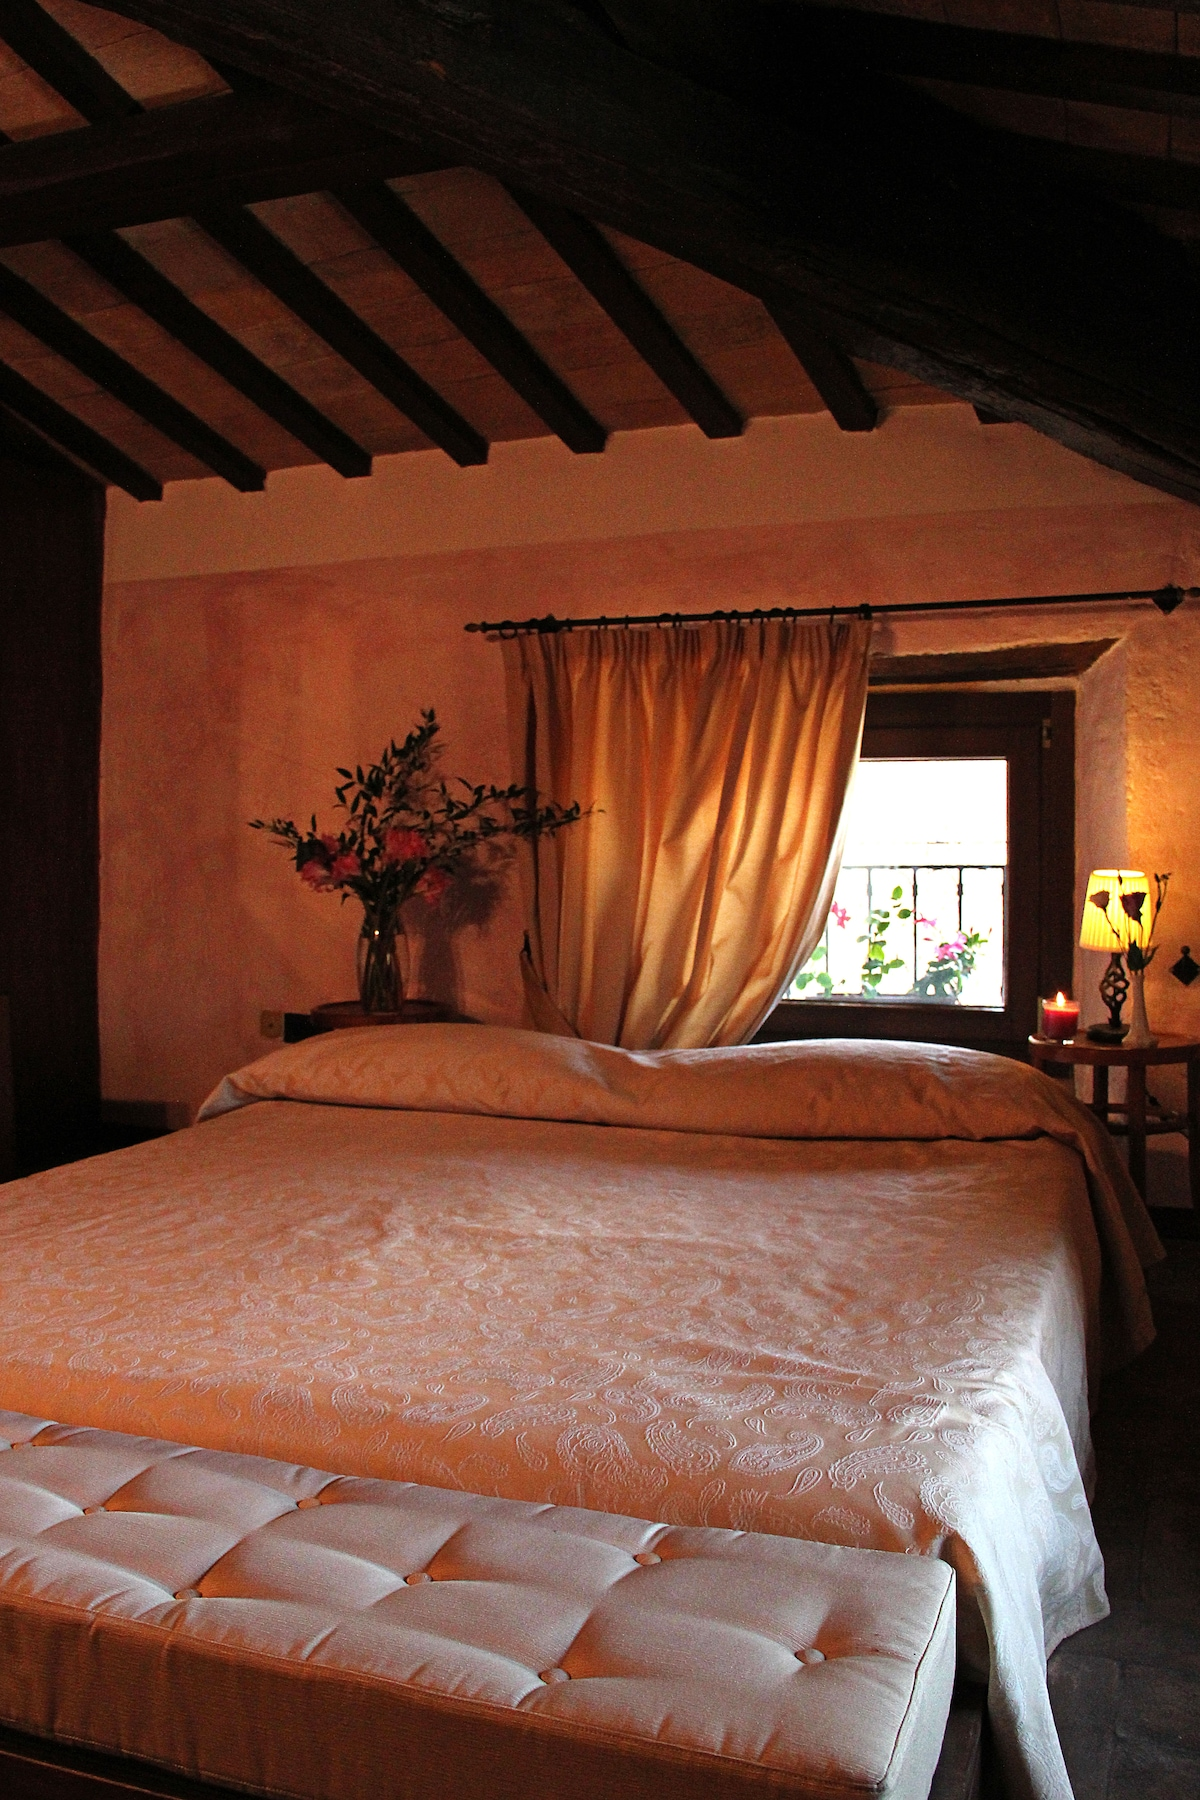 The Romantic Room @ Porta del Tempo